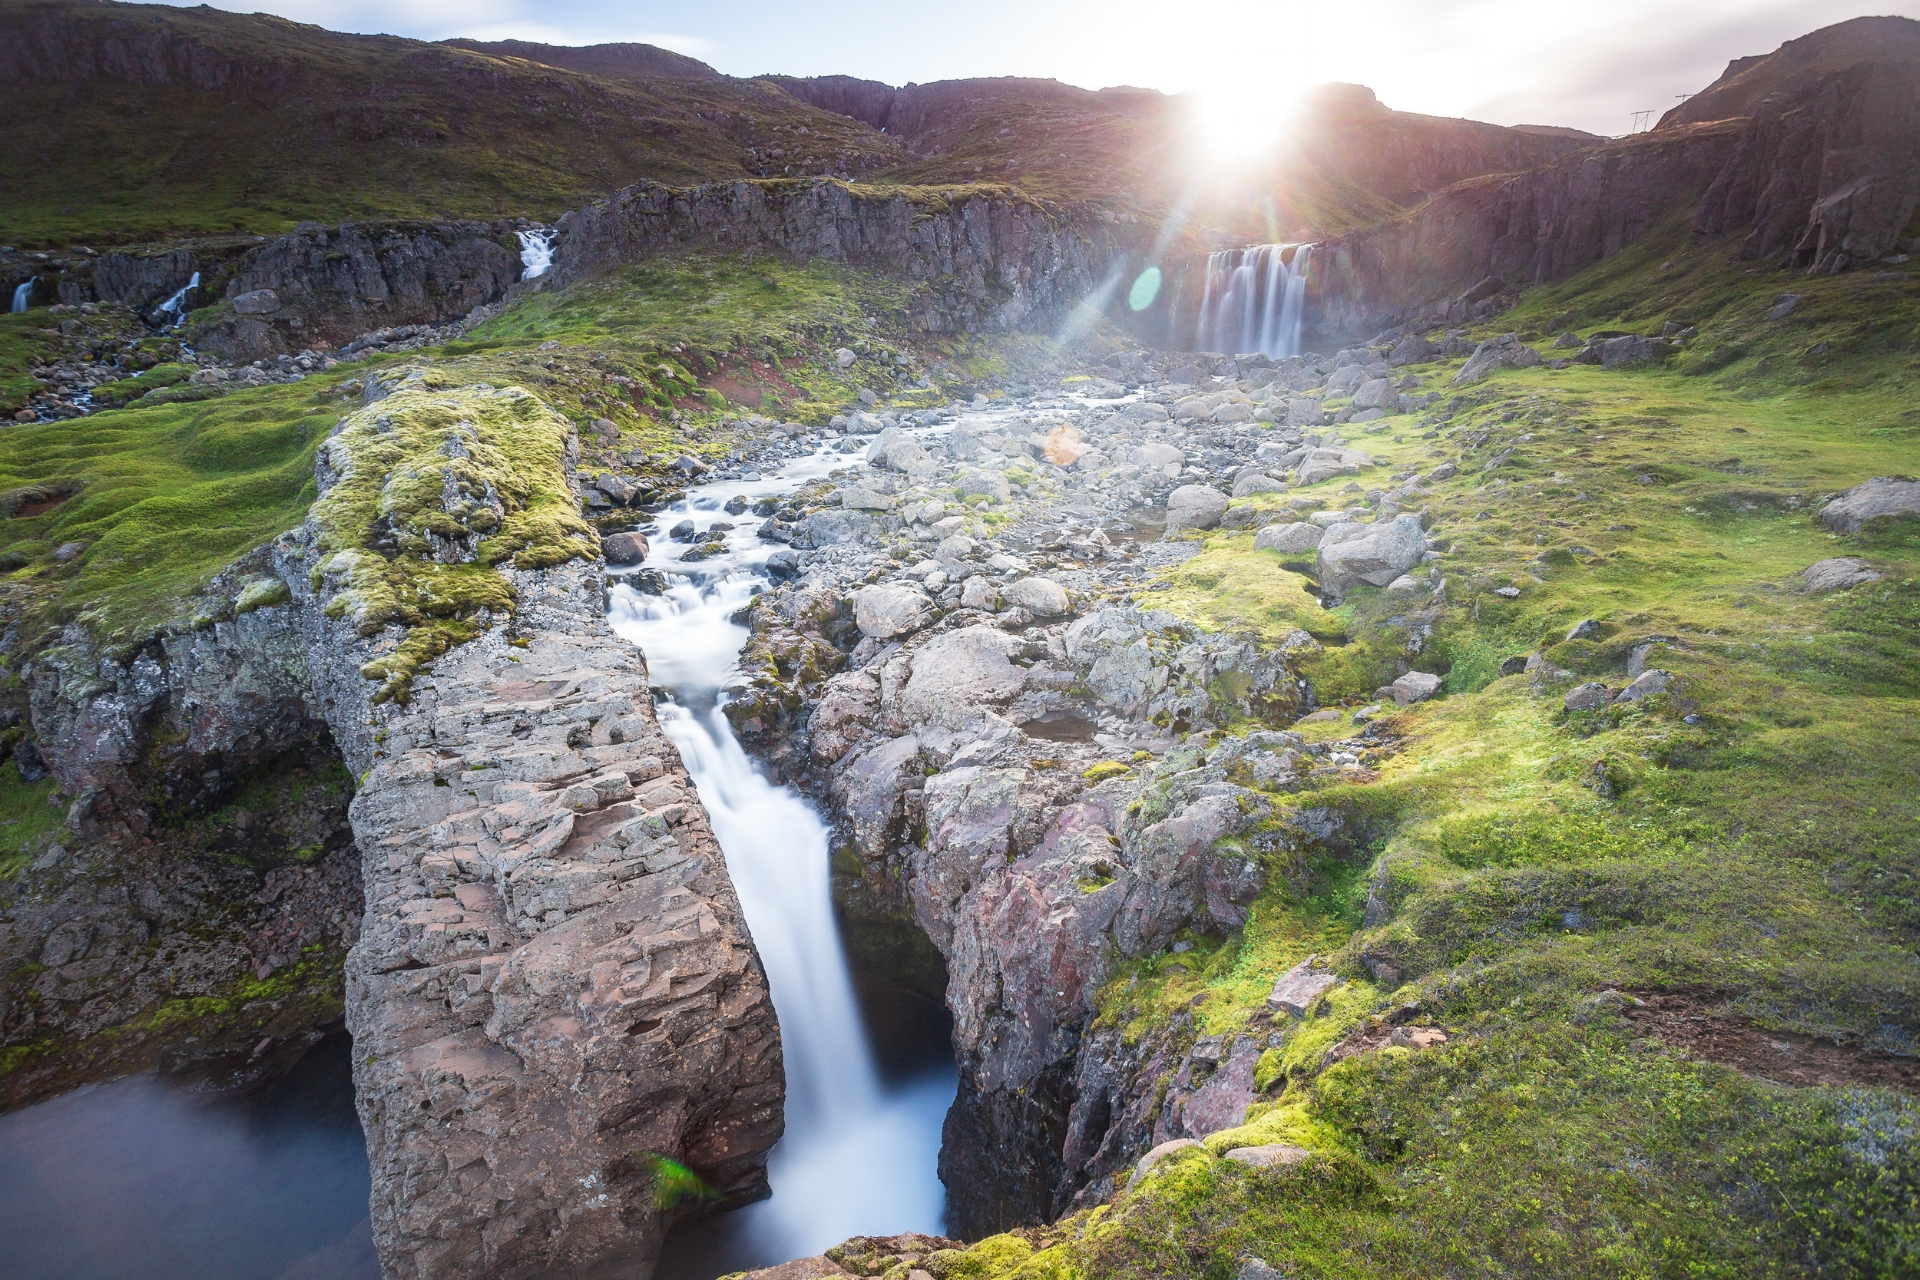 Seyðisfjörður is one of the most beautiful fjords in the East. There are a number of waterfalls along the way down to the town, only reachable on foot. Definitely worth the hike.